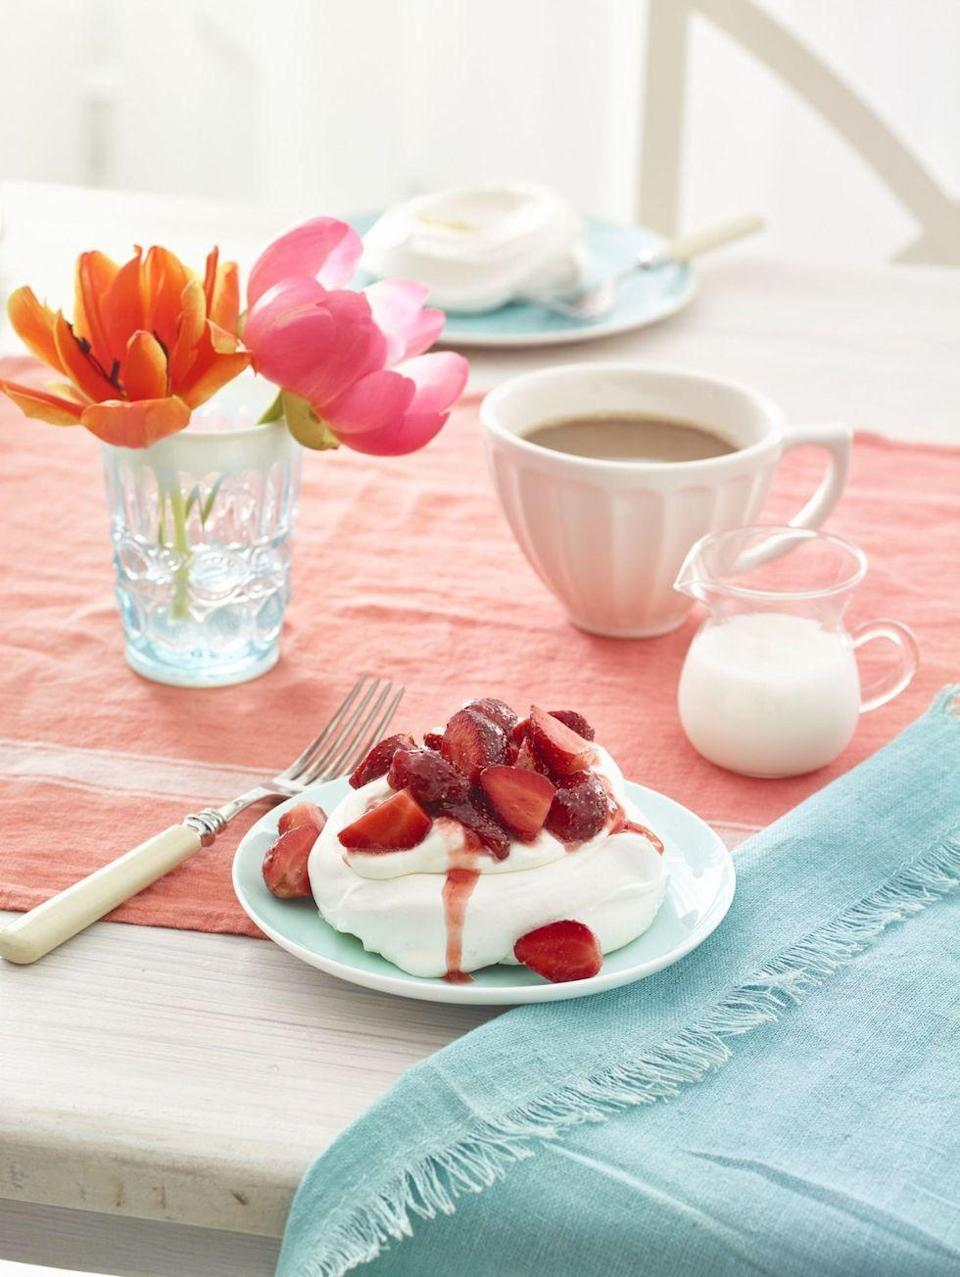 """<p>These light and airy single-serve treats are an elegant (gluten-free!) way to end a special meal.</p><p><em><a href=""""https://www.womansday.com/food-recipes/food-drinks/recipes/a54431/pavlovas-with-strawberries-and-cream-recipe/"""" rel=""""nofollow noopener"""" target=""""_blank"""" data-ylk=""""slk:Get the recipe from Woman's Day »"""" class=""""link rapid-noclick-resp"""">Get the recipe from Woman's Day »</a></em></p>"""